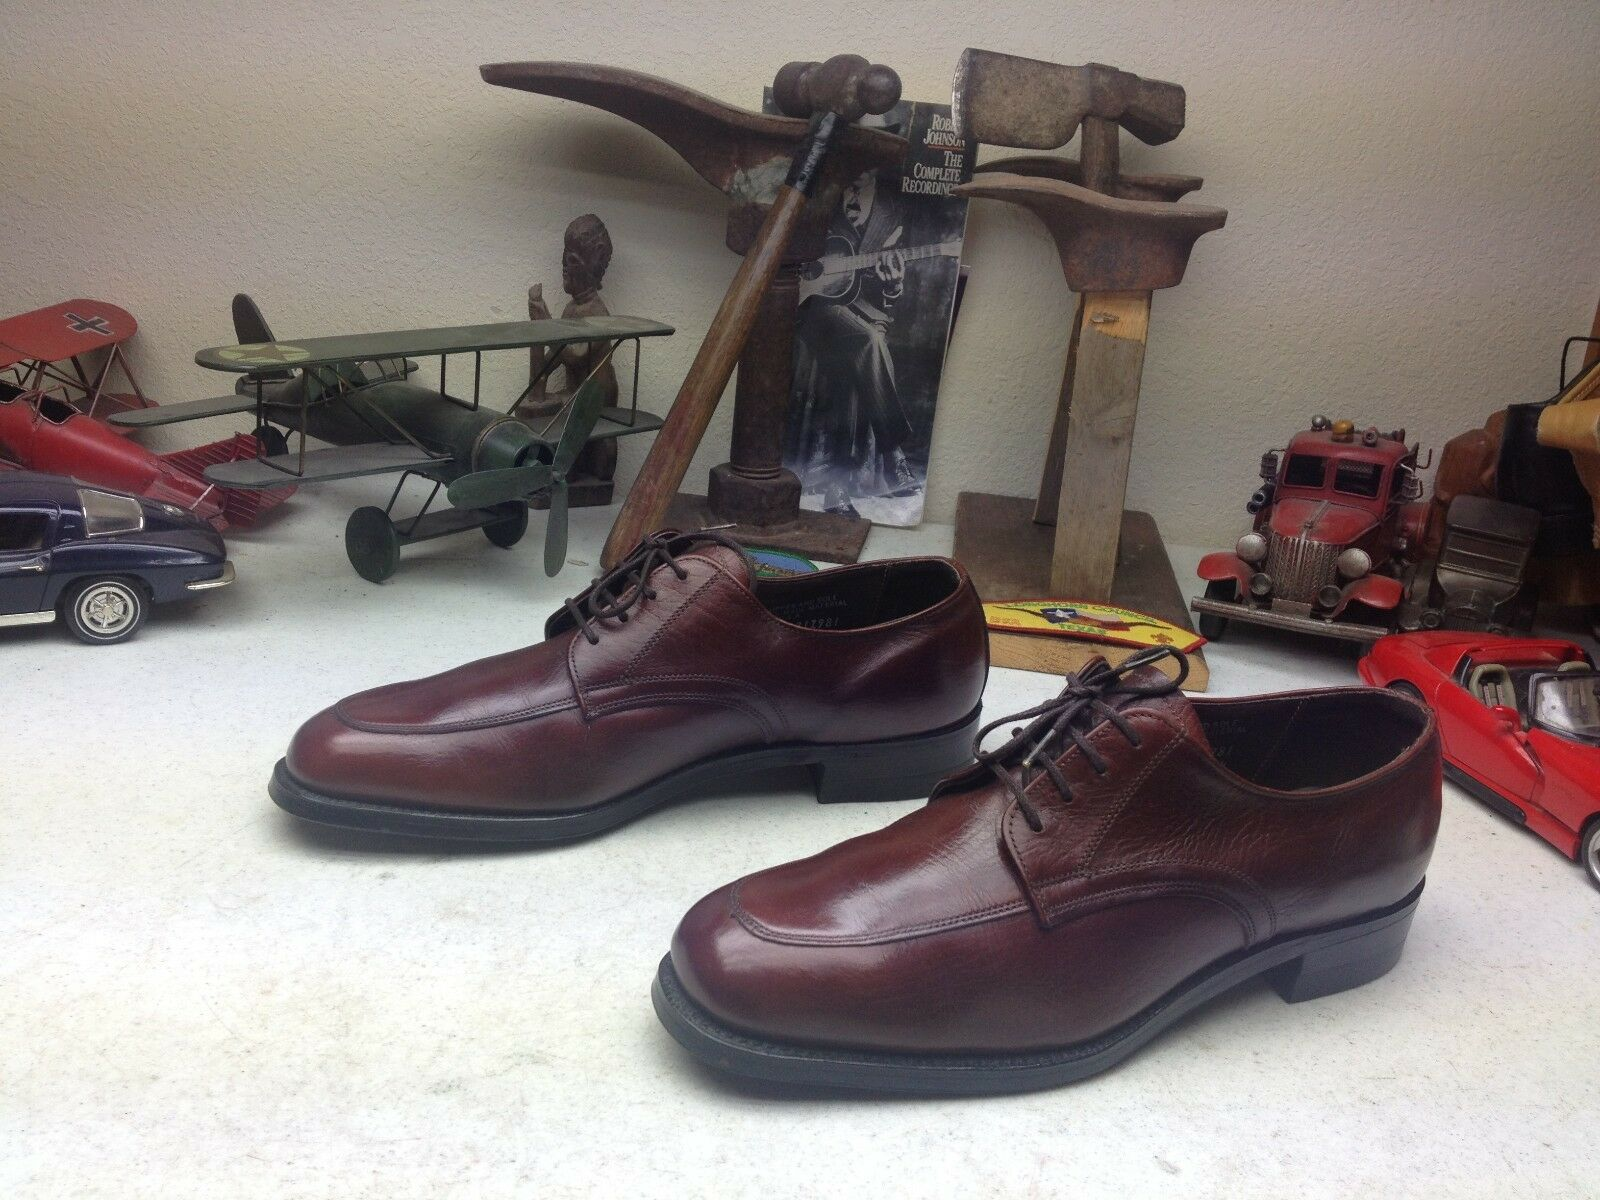 a buon mercato MADE IN USA BARCLAY BURGUNDY OXBLOOD Marrone LEATHER BUSINESS BUSINESS BUSINESS POWER scarpe 10 D  Sconto del 40%